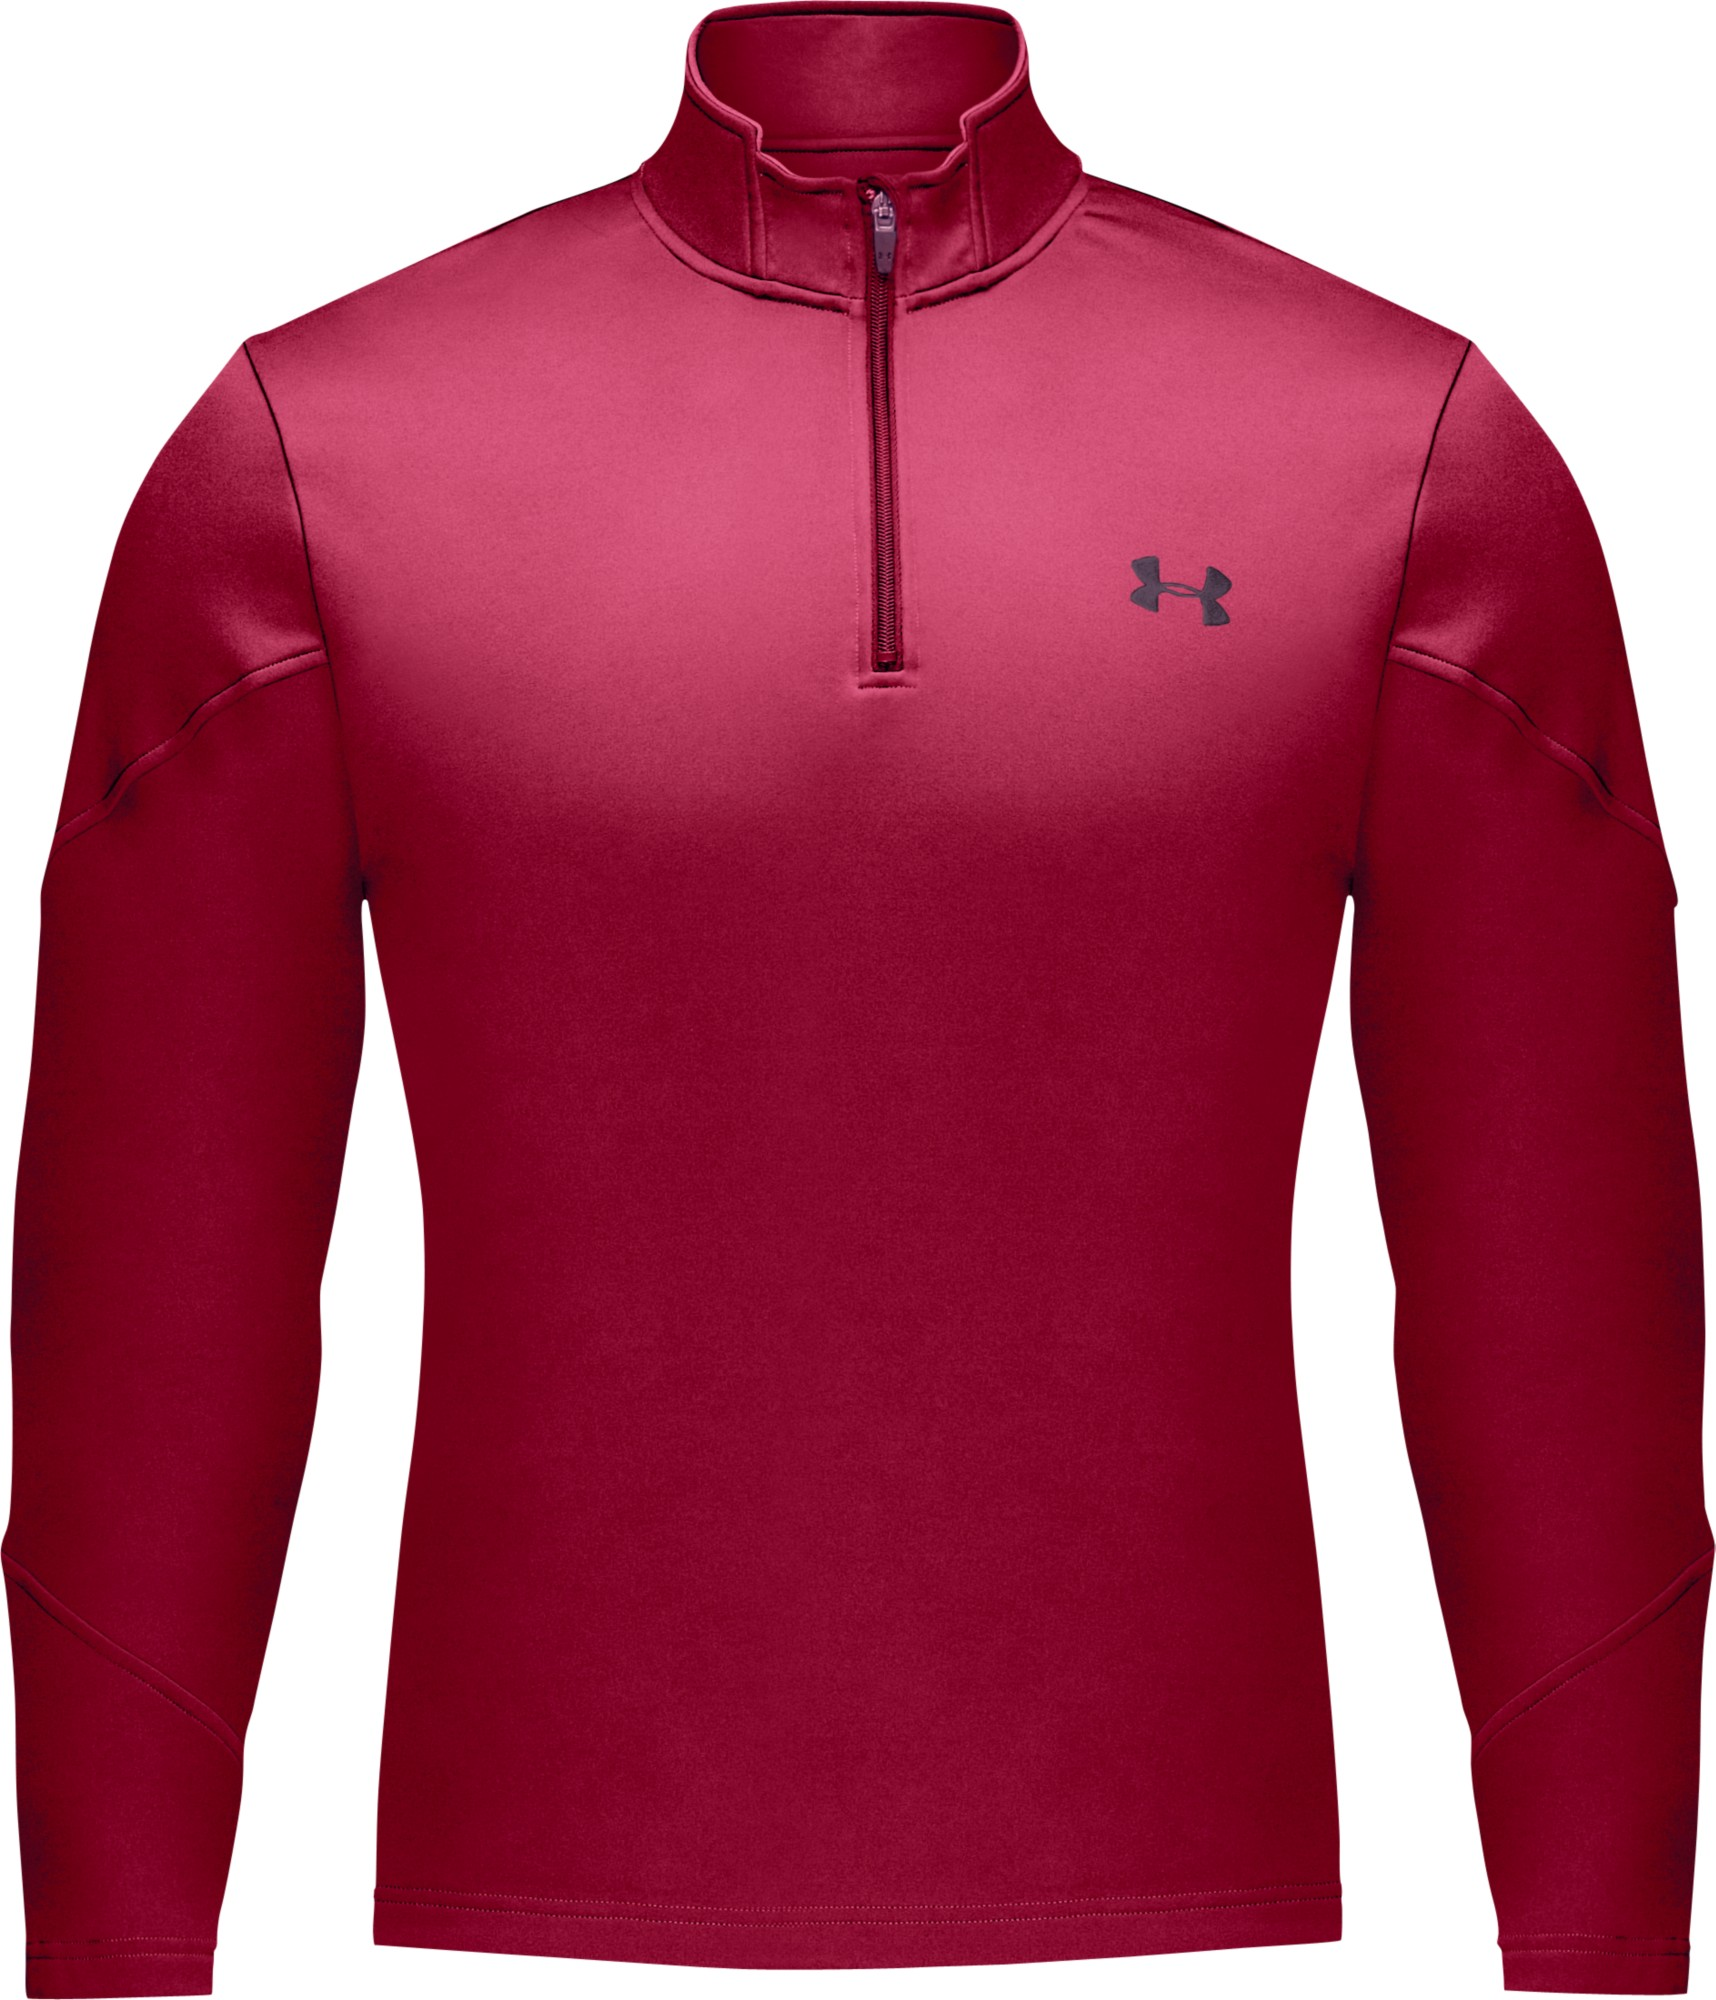 Under Armour ColdGear Stableford 1/4 Zip Warmup